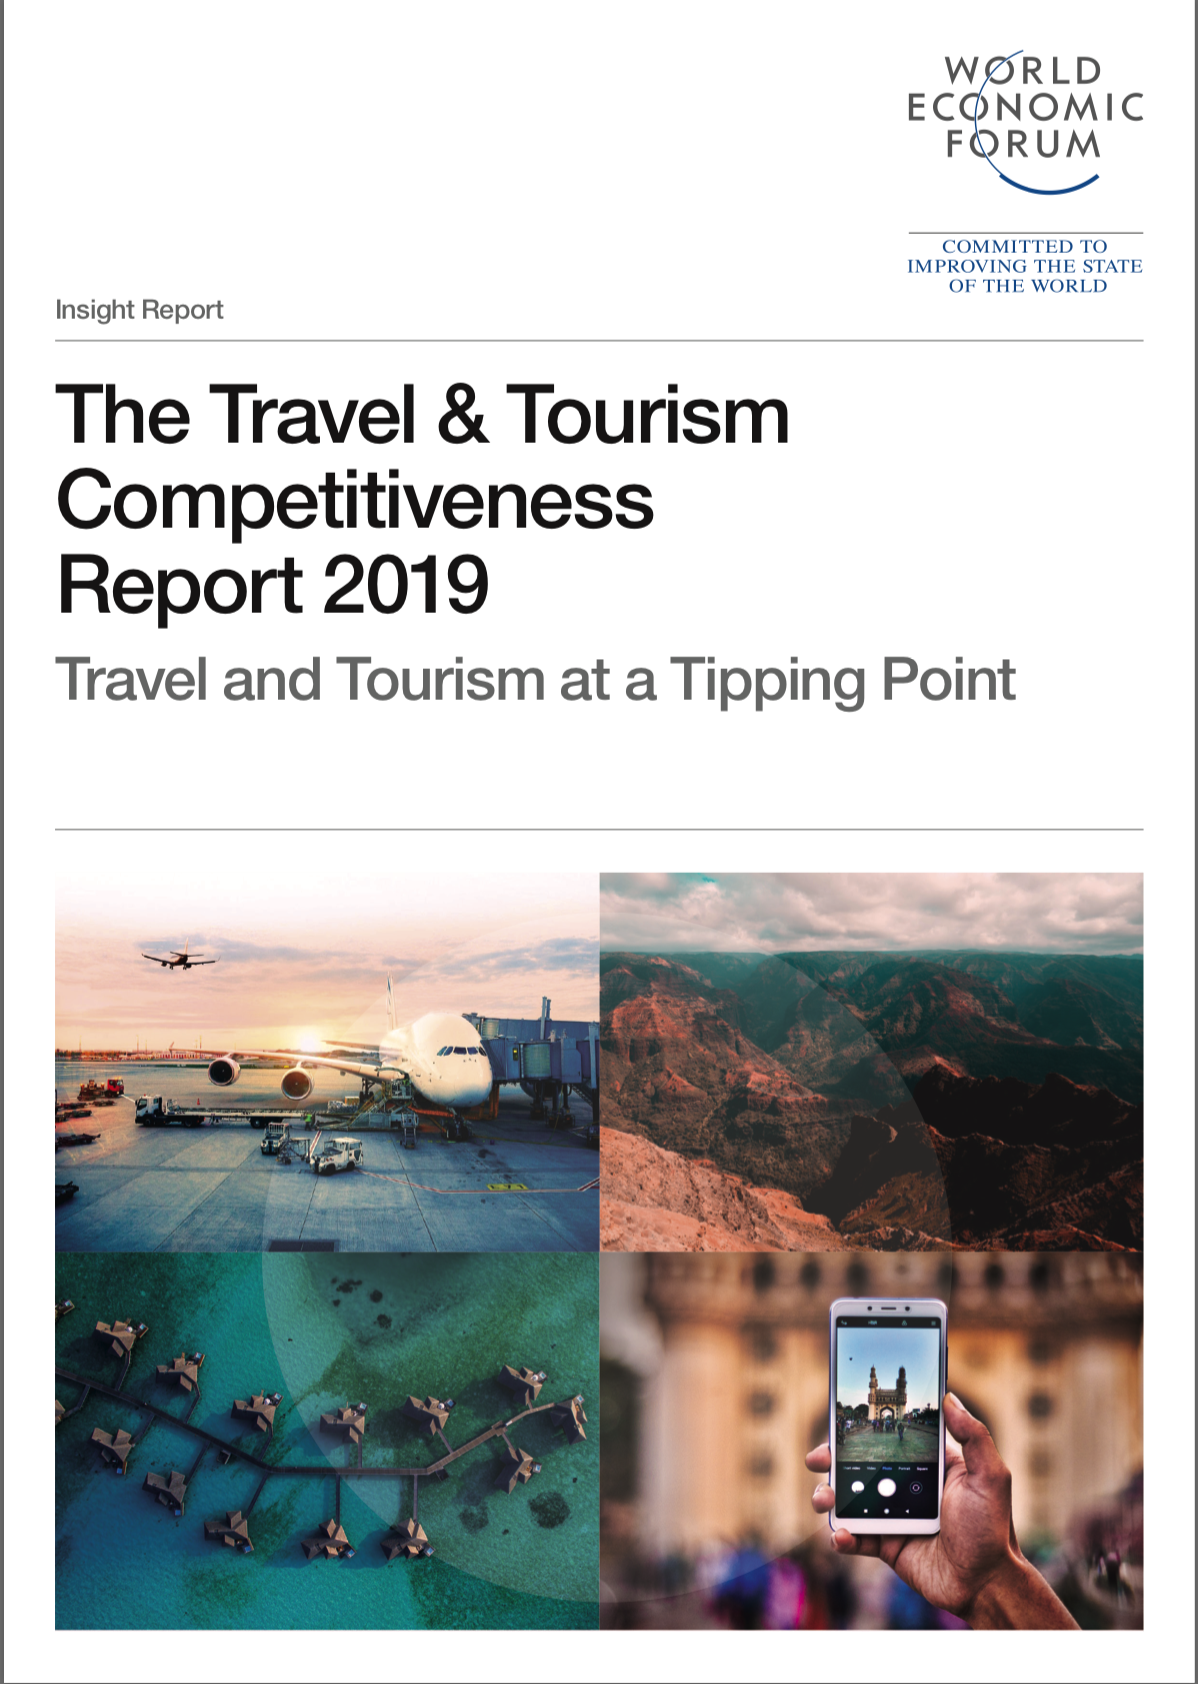 The Travel and Tourism Competitiveness Report 2019